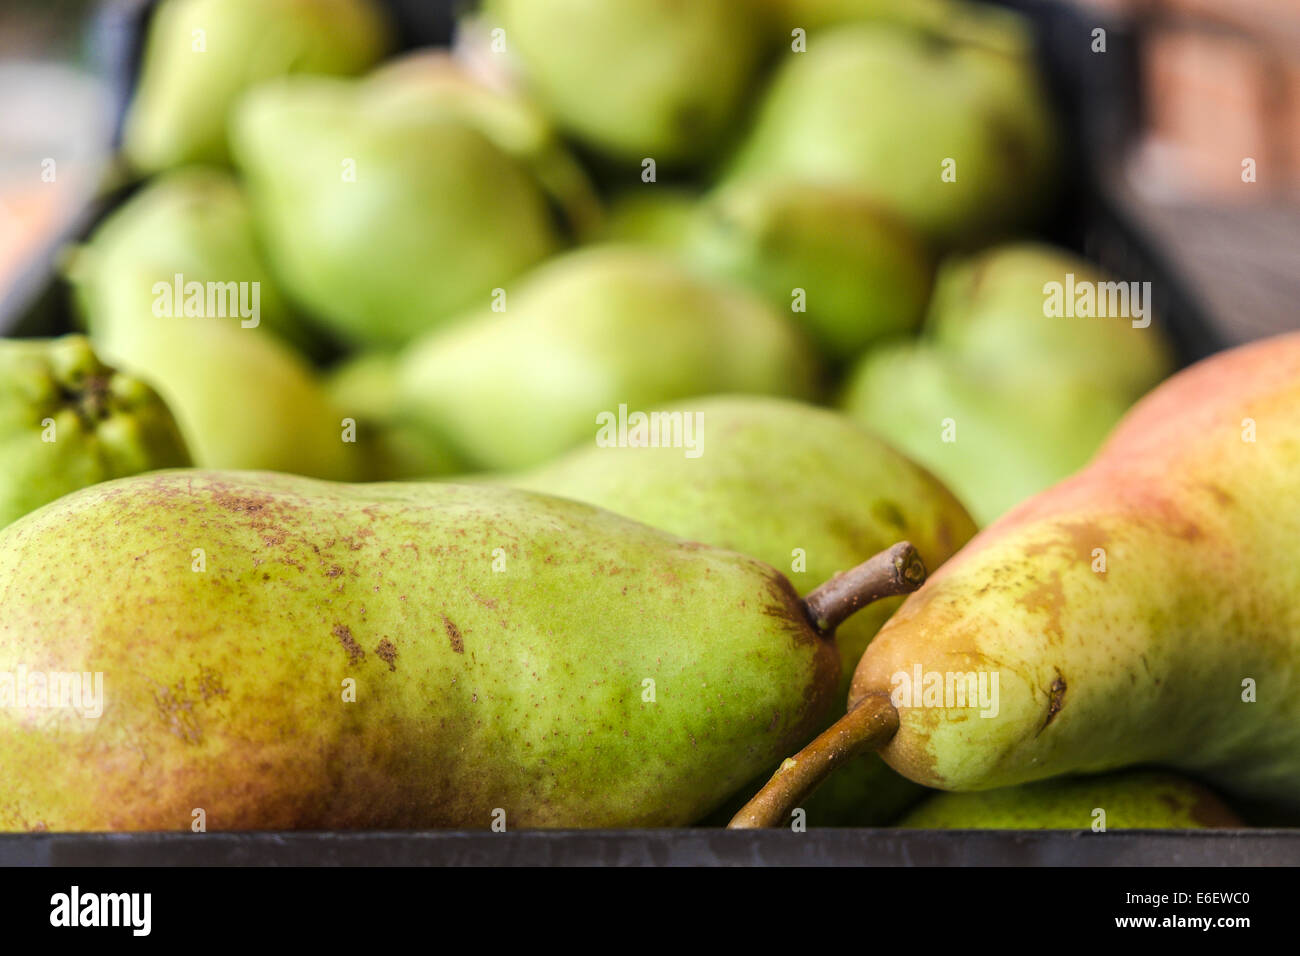 Pears of Spanish farms during Russian boicott food to UE Stock Photo